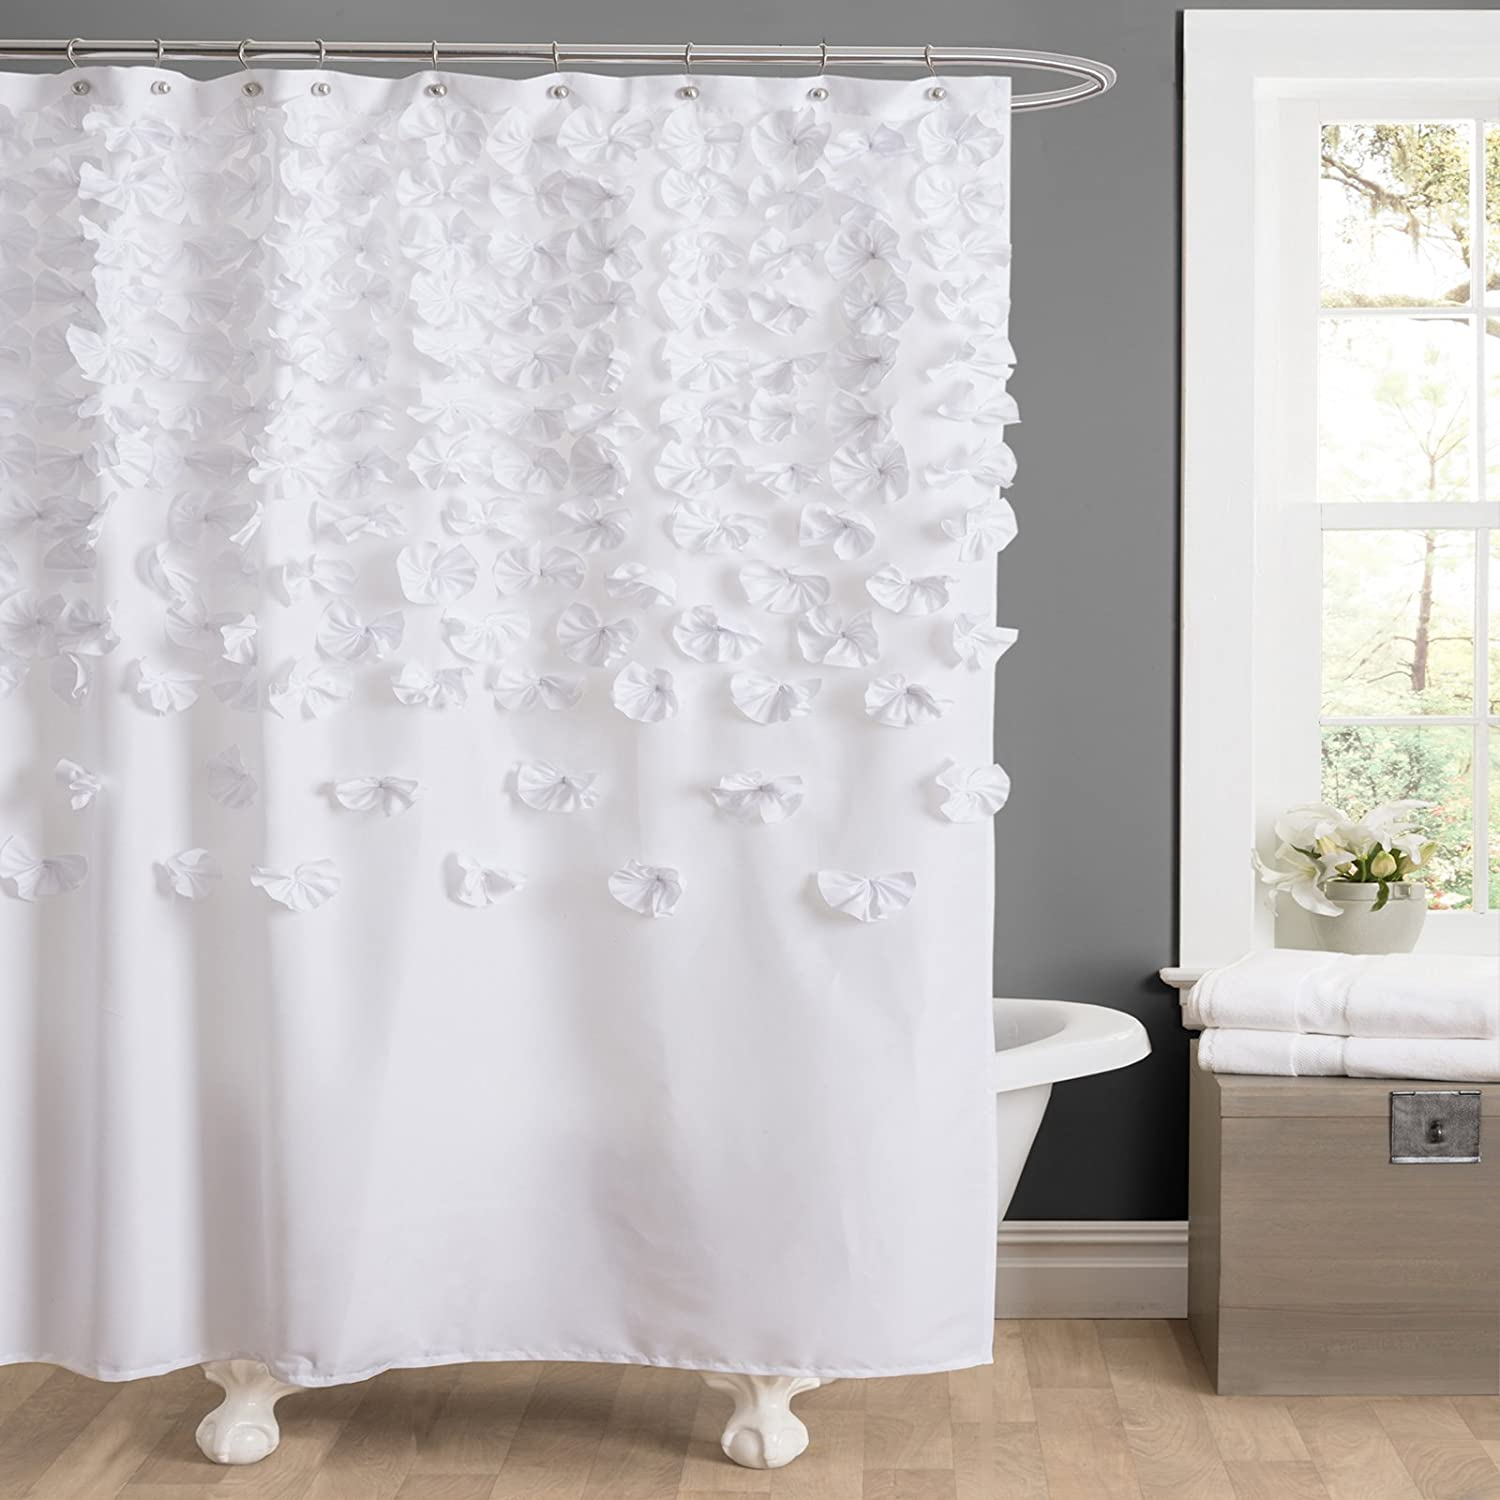 Attrayant Amazon.com: Lush Decor Lucia Shower Curtain, 72 Inch By 72 Inch, Ivory:  Home U0026 Kitchen